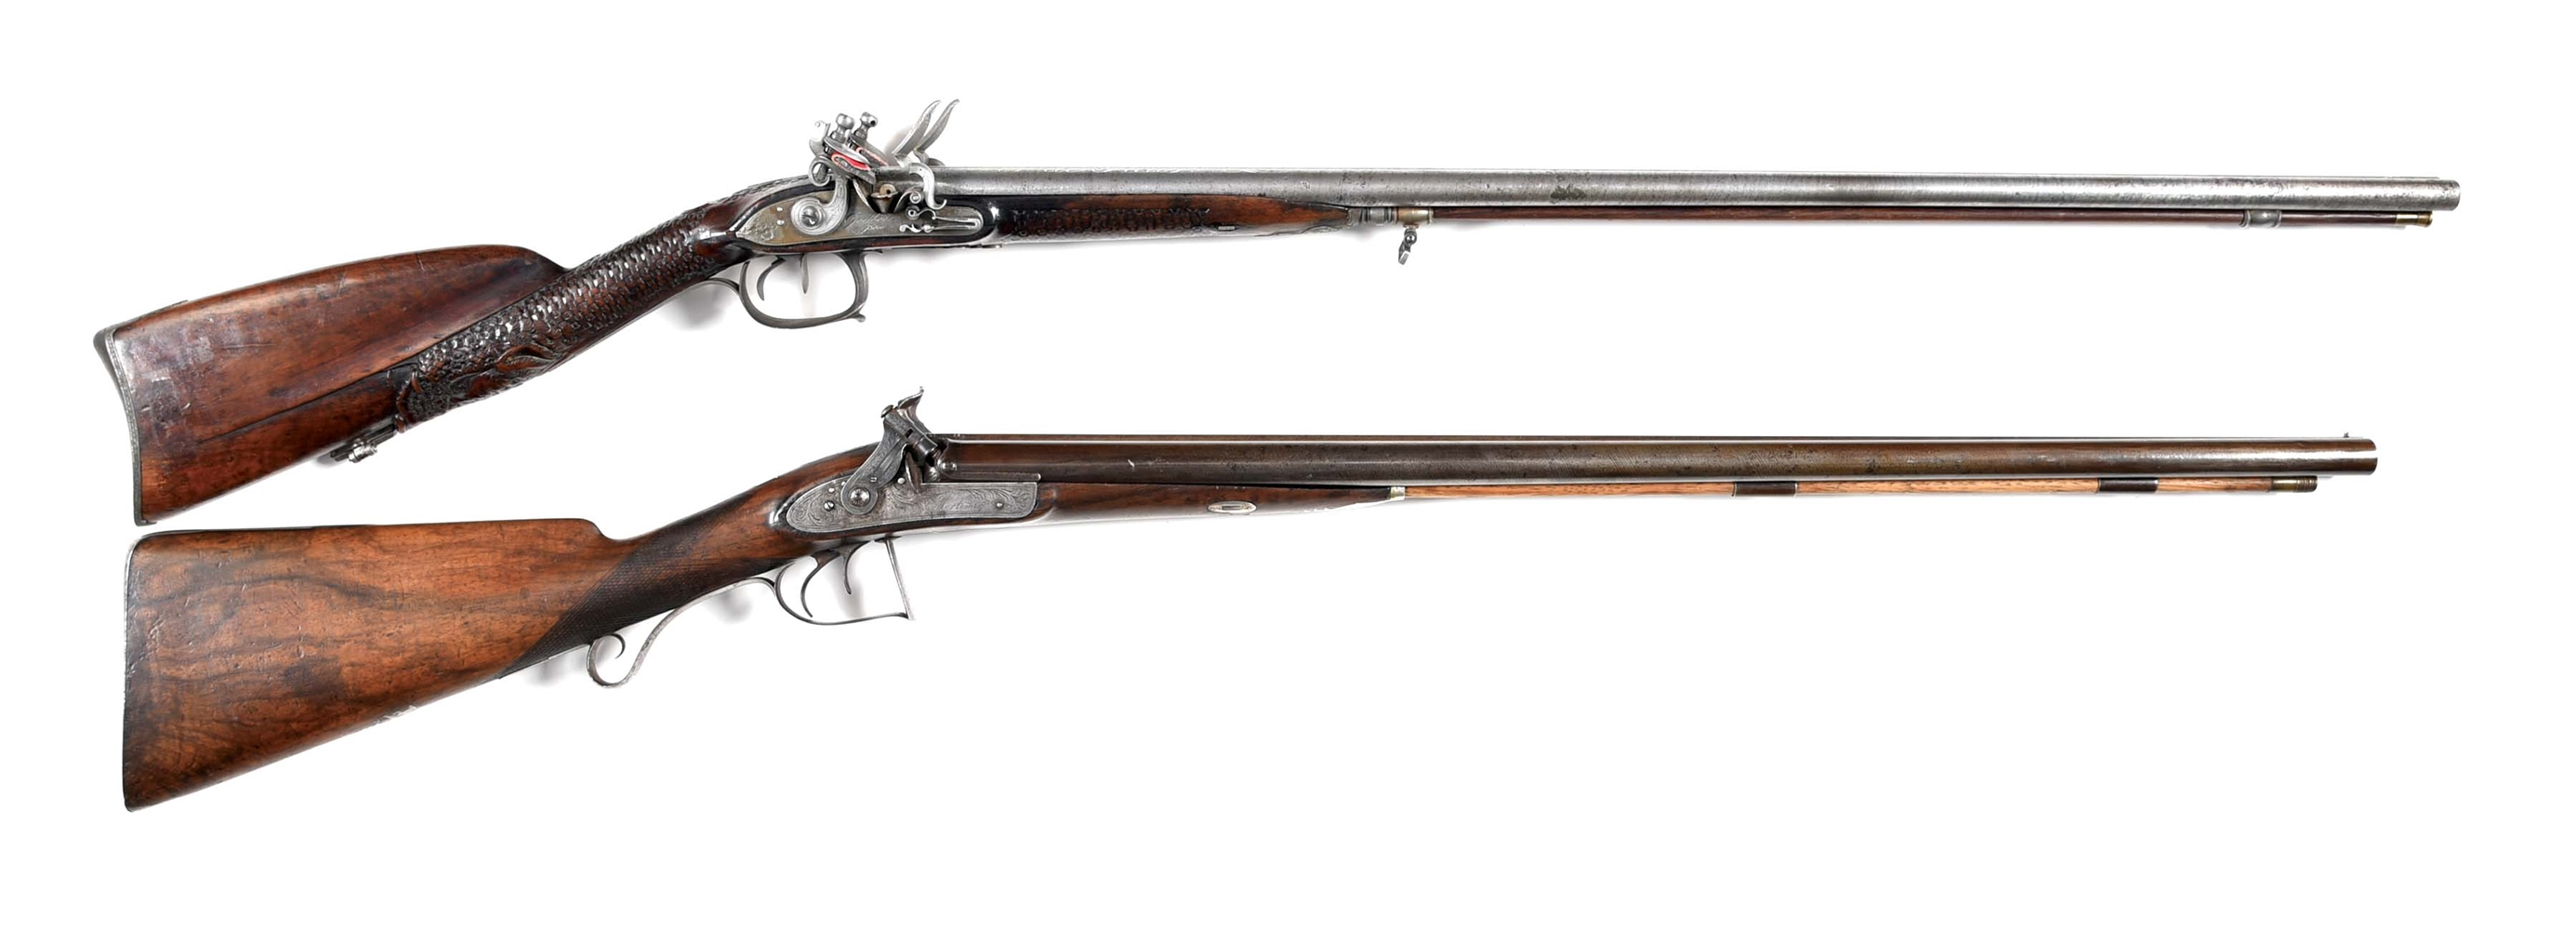 (A) LOT OF 2: GODBERT FIGURAL CARVED FLINTLOCK AND ENGLISH MORTIMER PERCUSSION SIDE BY SIDE SHOTGUNS.